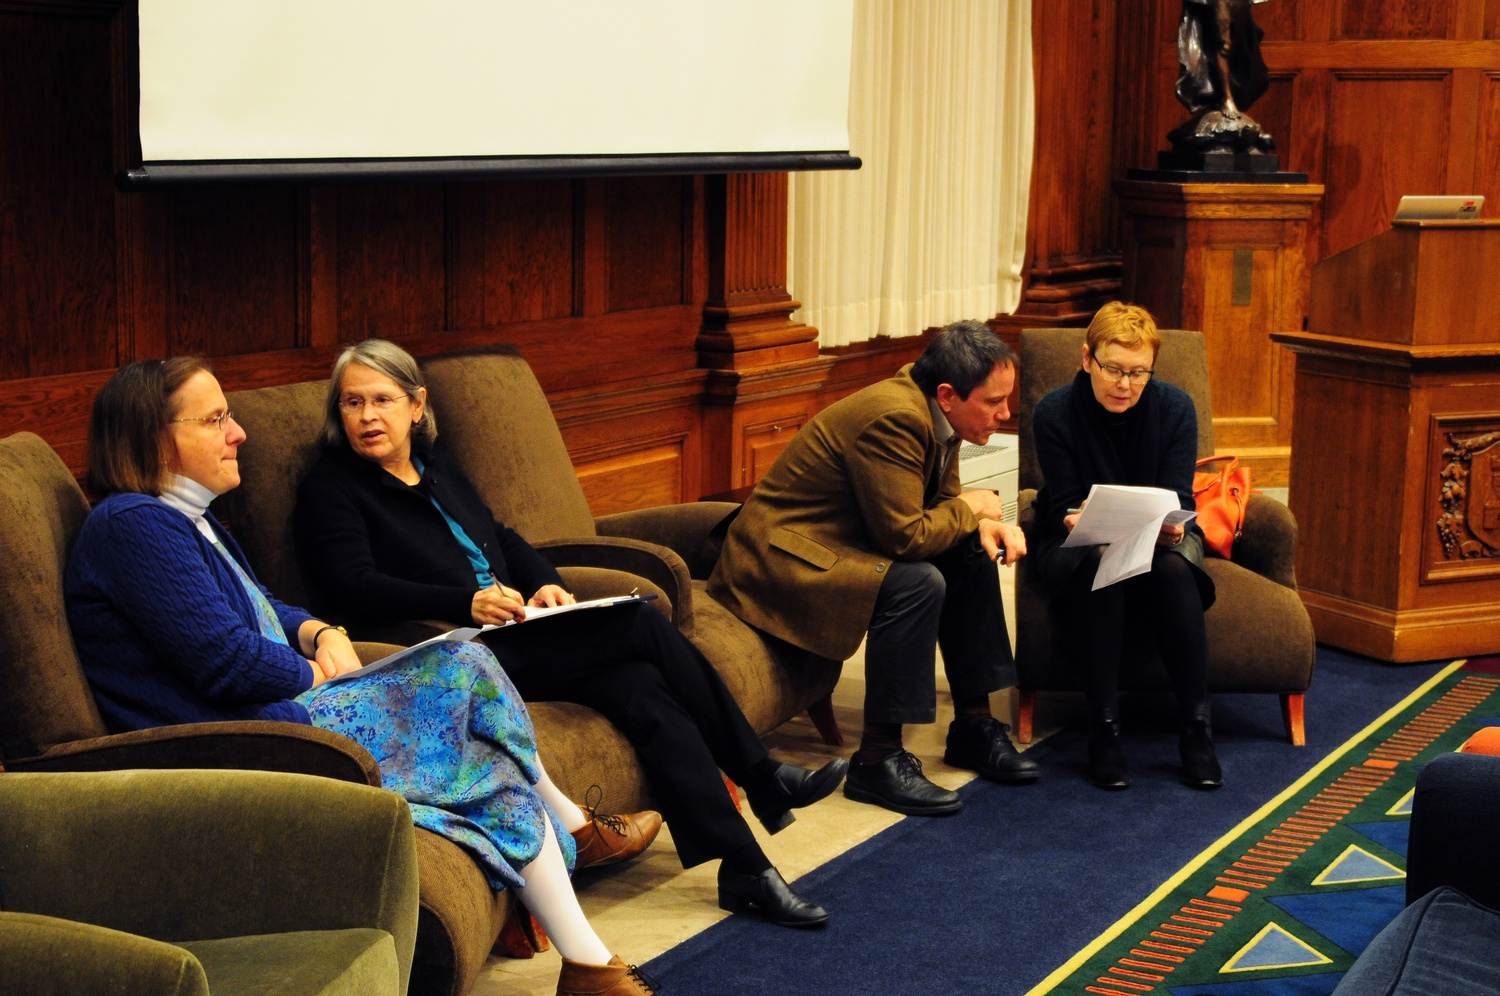 Karen King, Anne Monius, Ahmed Ragab, and Daniel Smail prepare for their lecture of a History of Death Thursday night in the Barker Center.  They chronicled the place of death in pre-modern history and worked to trace the intersections of politics and death across religious and cultural boundaries.